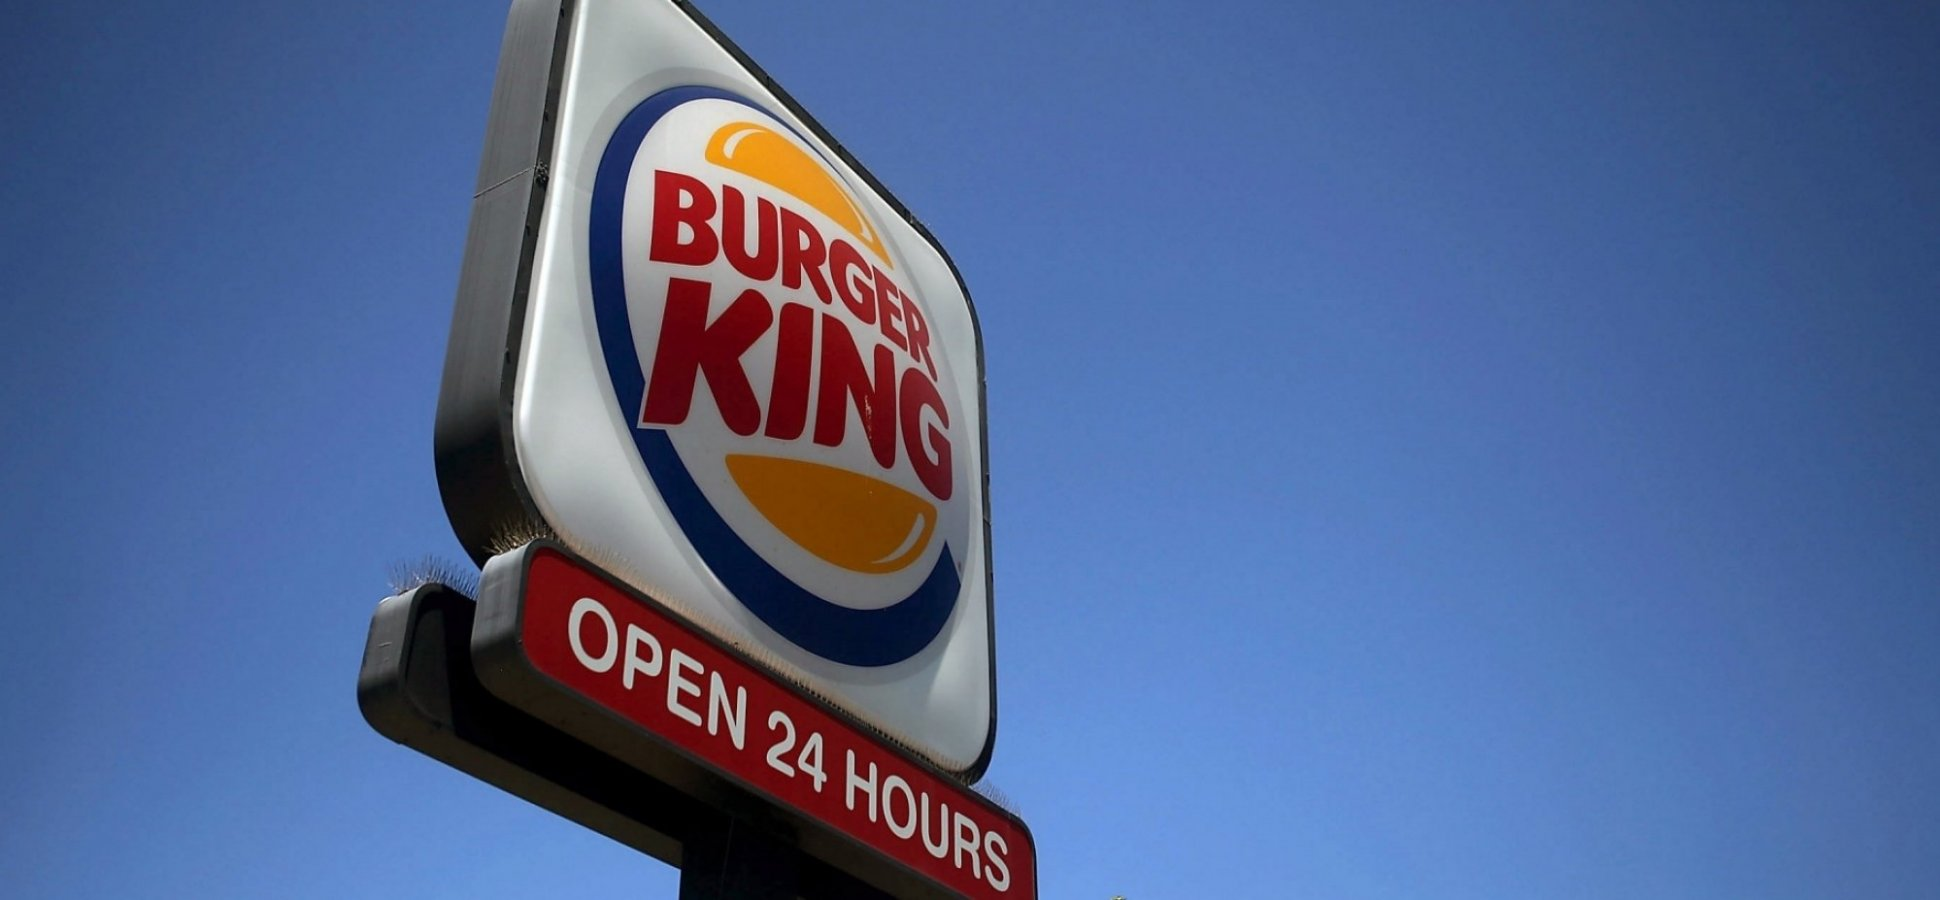 Burger King Just Made a Huge Announcement That'll Frighten Competitors. There's a Little Catch